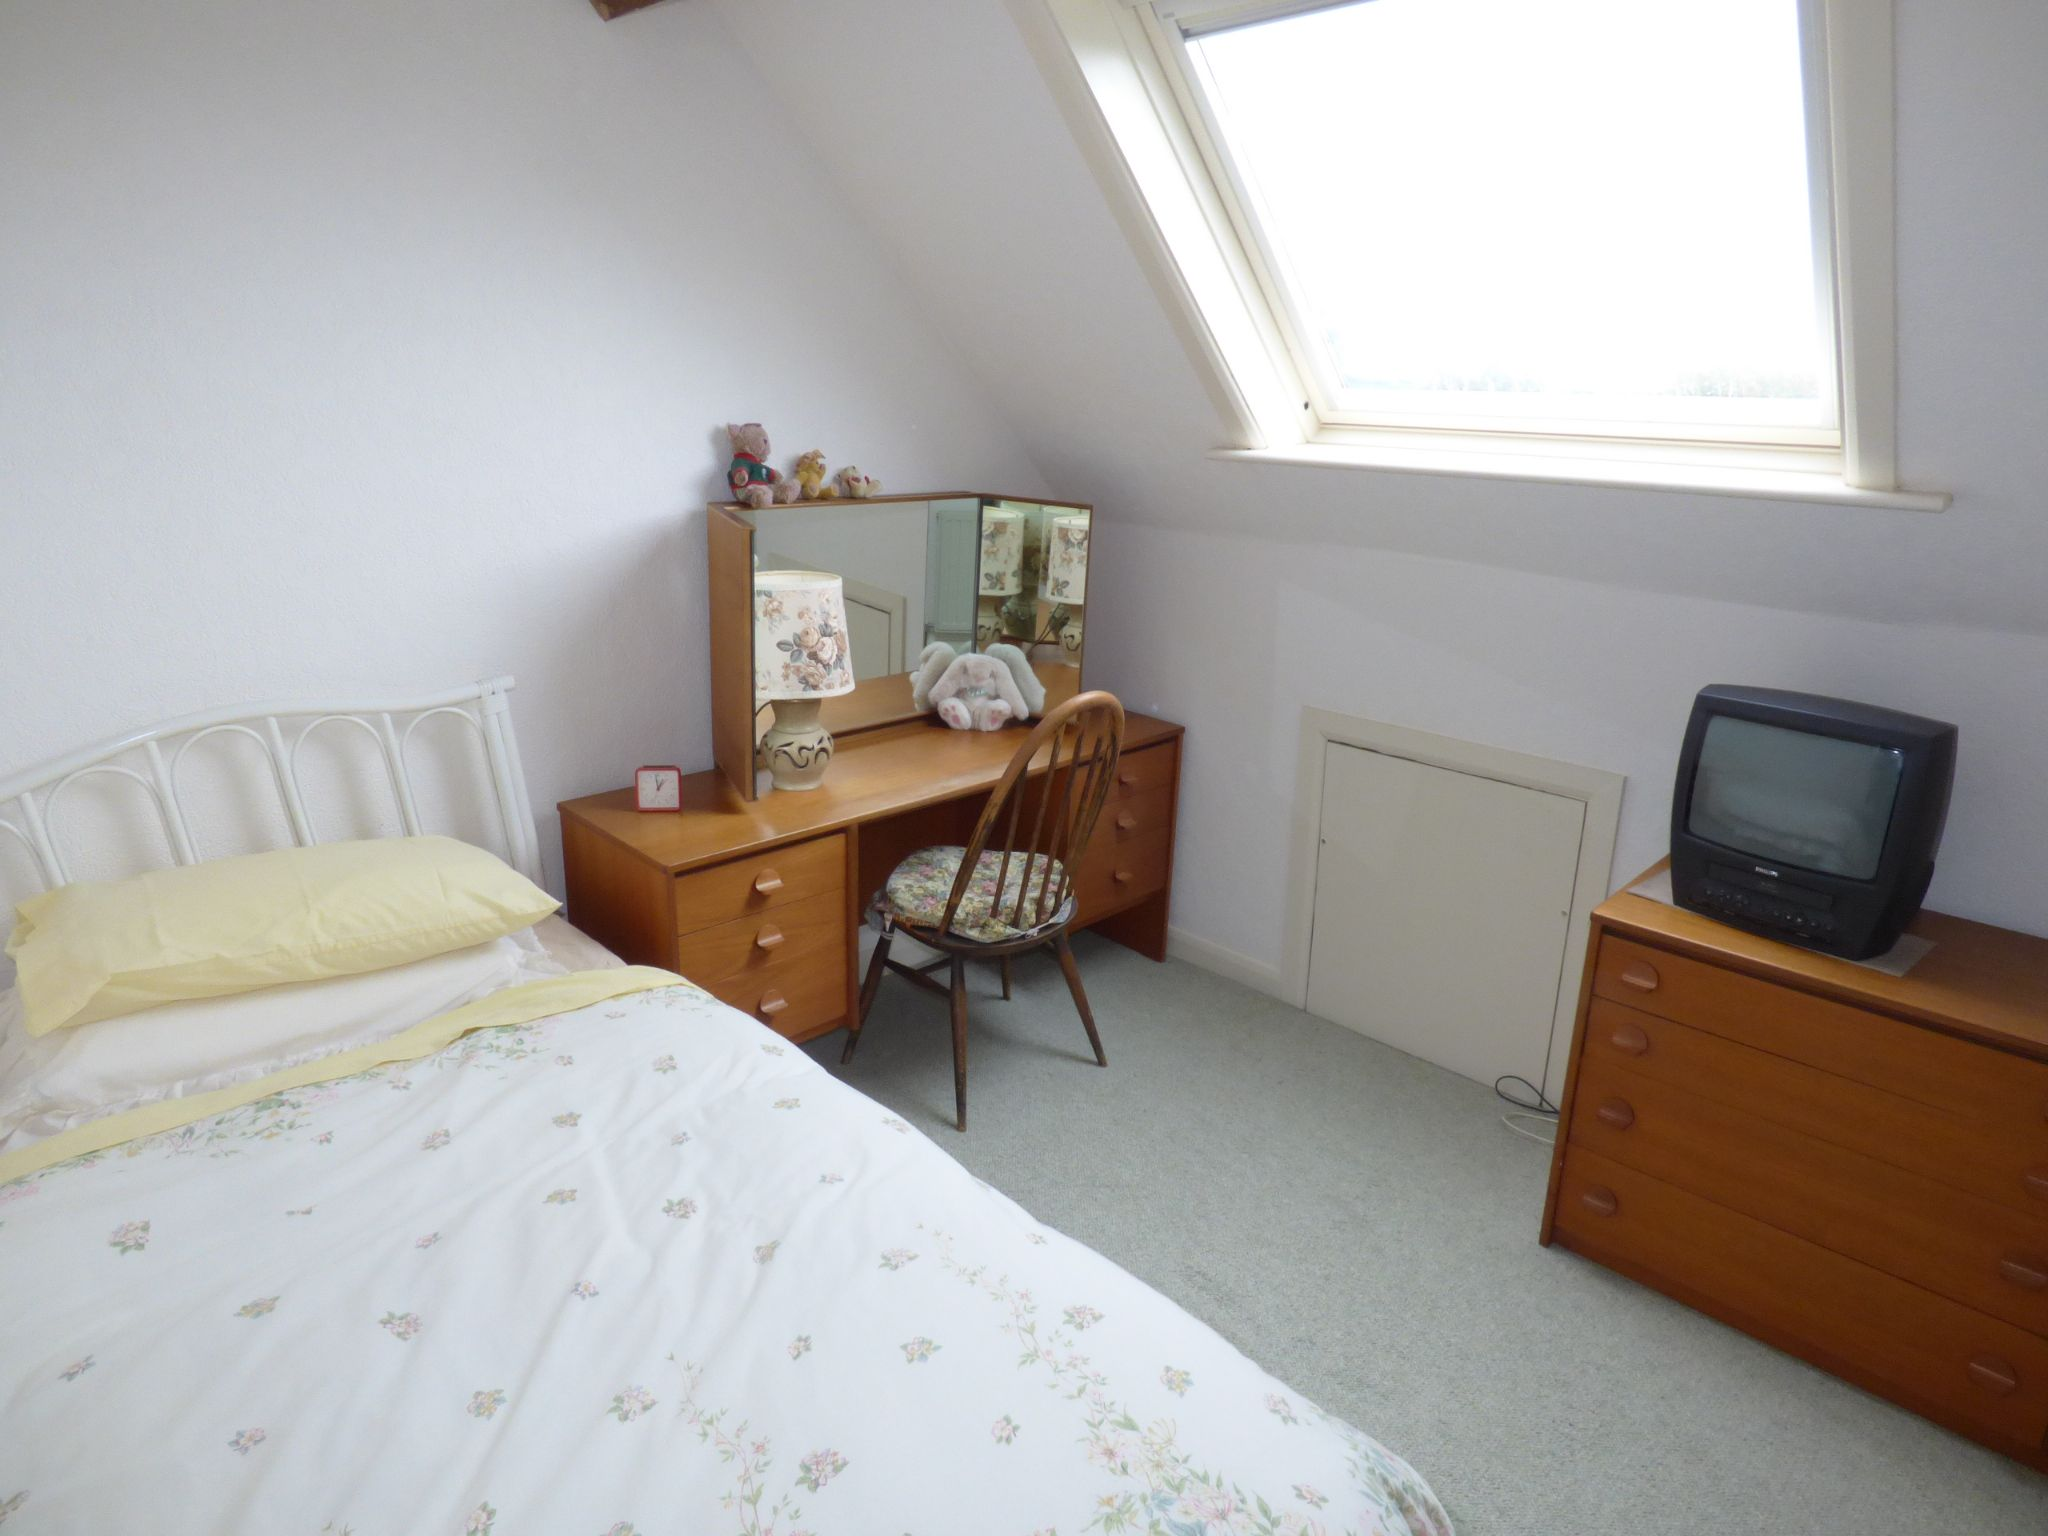 5 Bedroom Detached Bungalow For Sale - Photograph 5